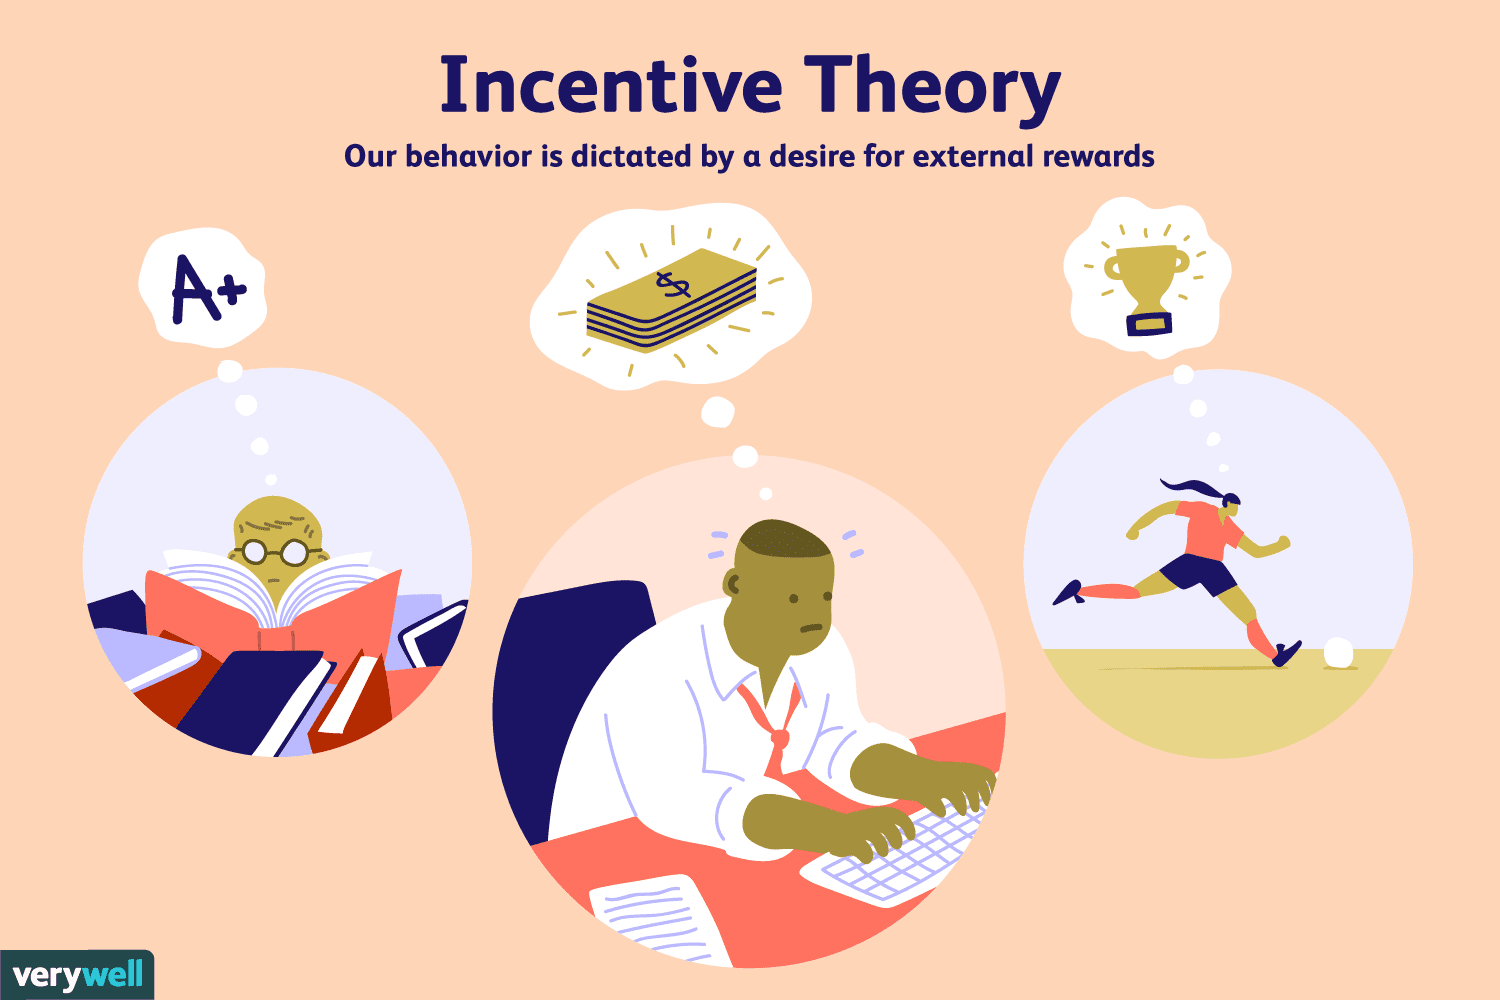 Incentive Management and Inspiration Theory